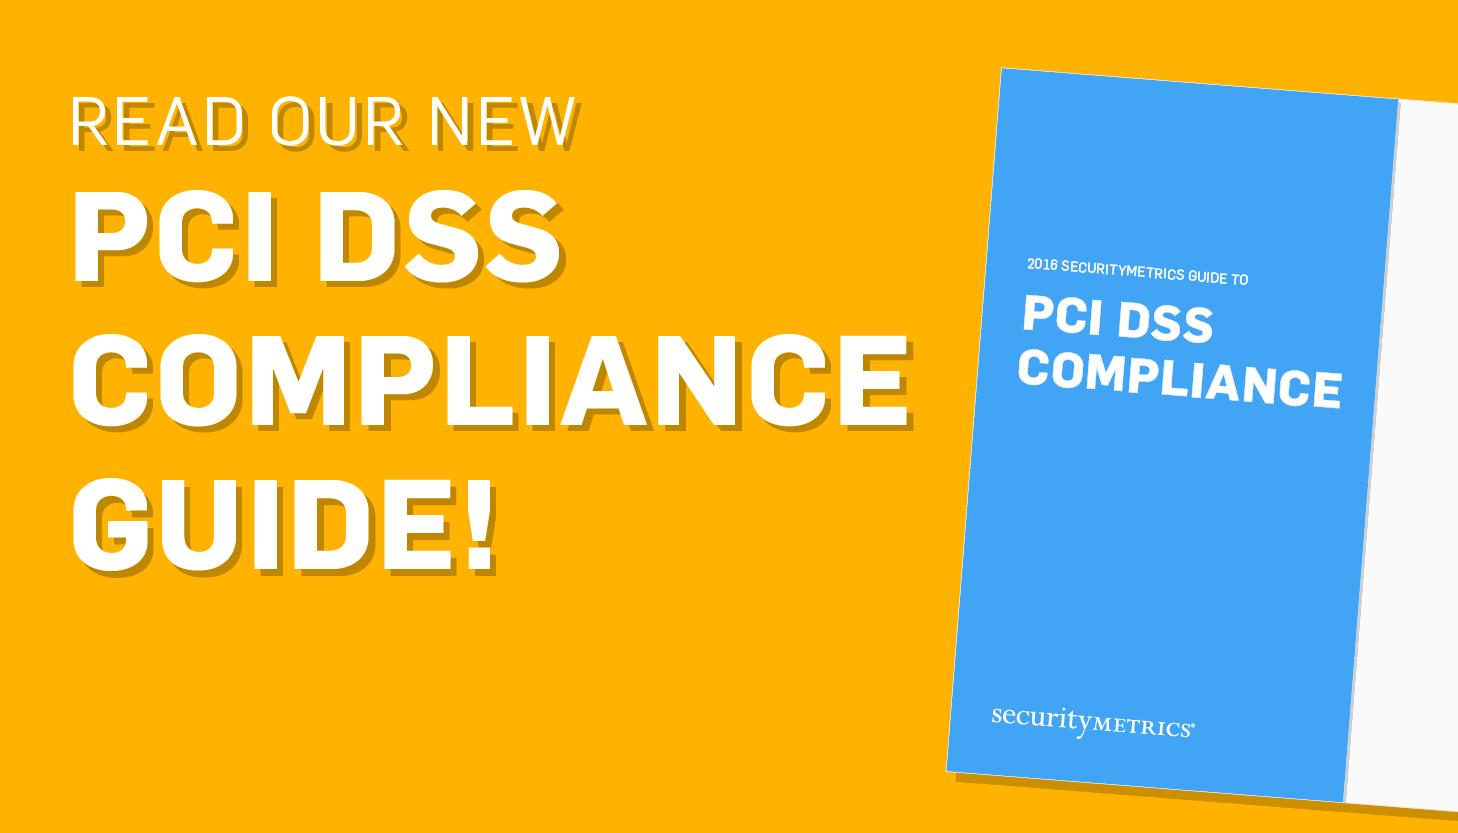 2016 Data Breach Predictions from SecurityMetrics PCI Compliance Guide